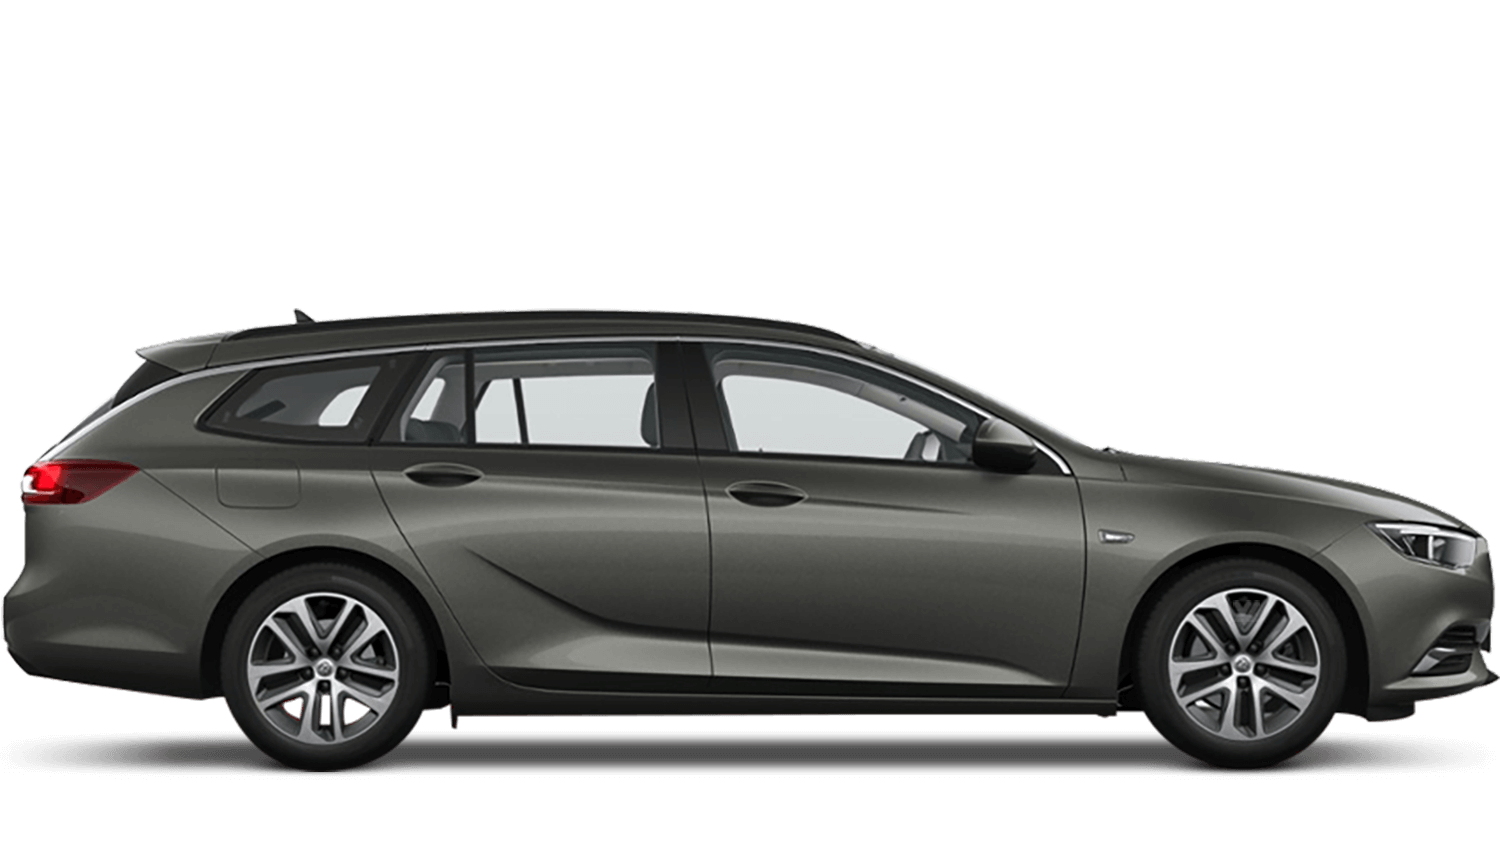 Cosmic Grey (Pearlescent) Vauxhall Insignia Sports Tourer